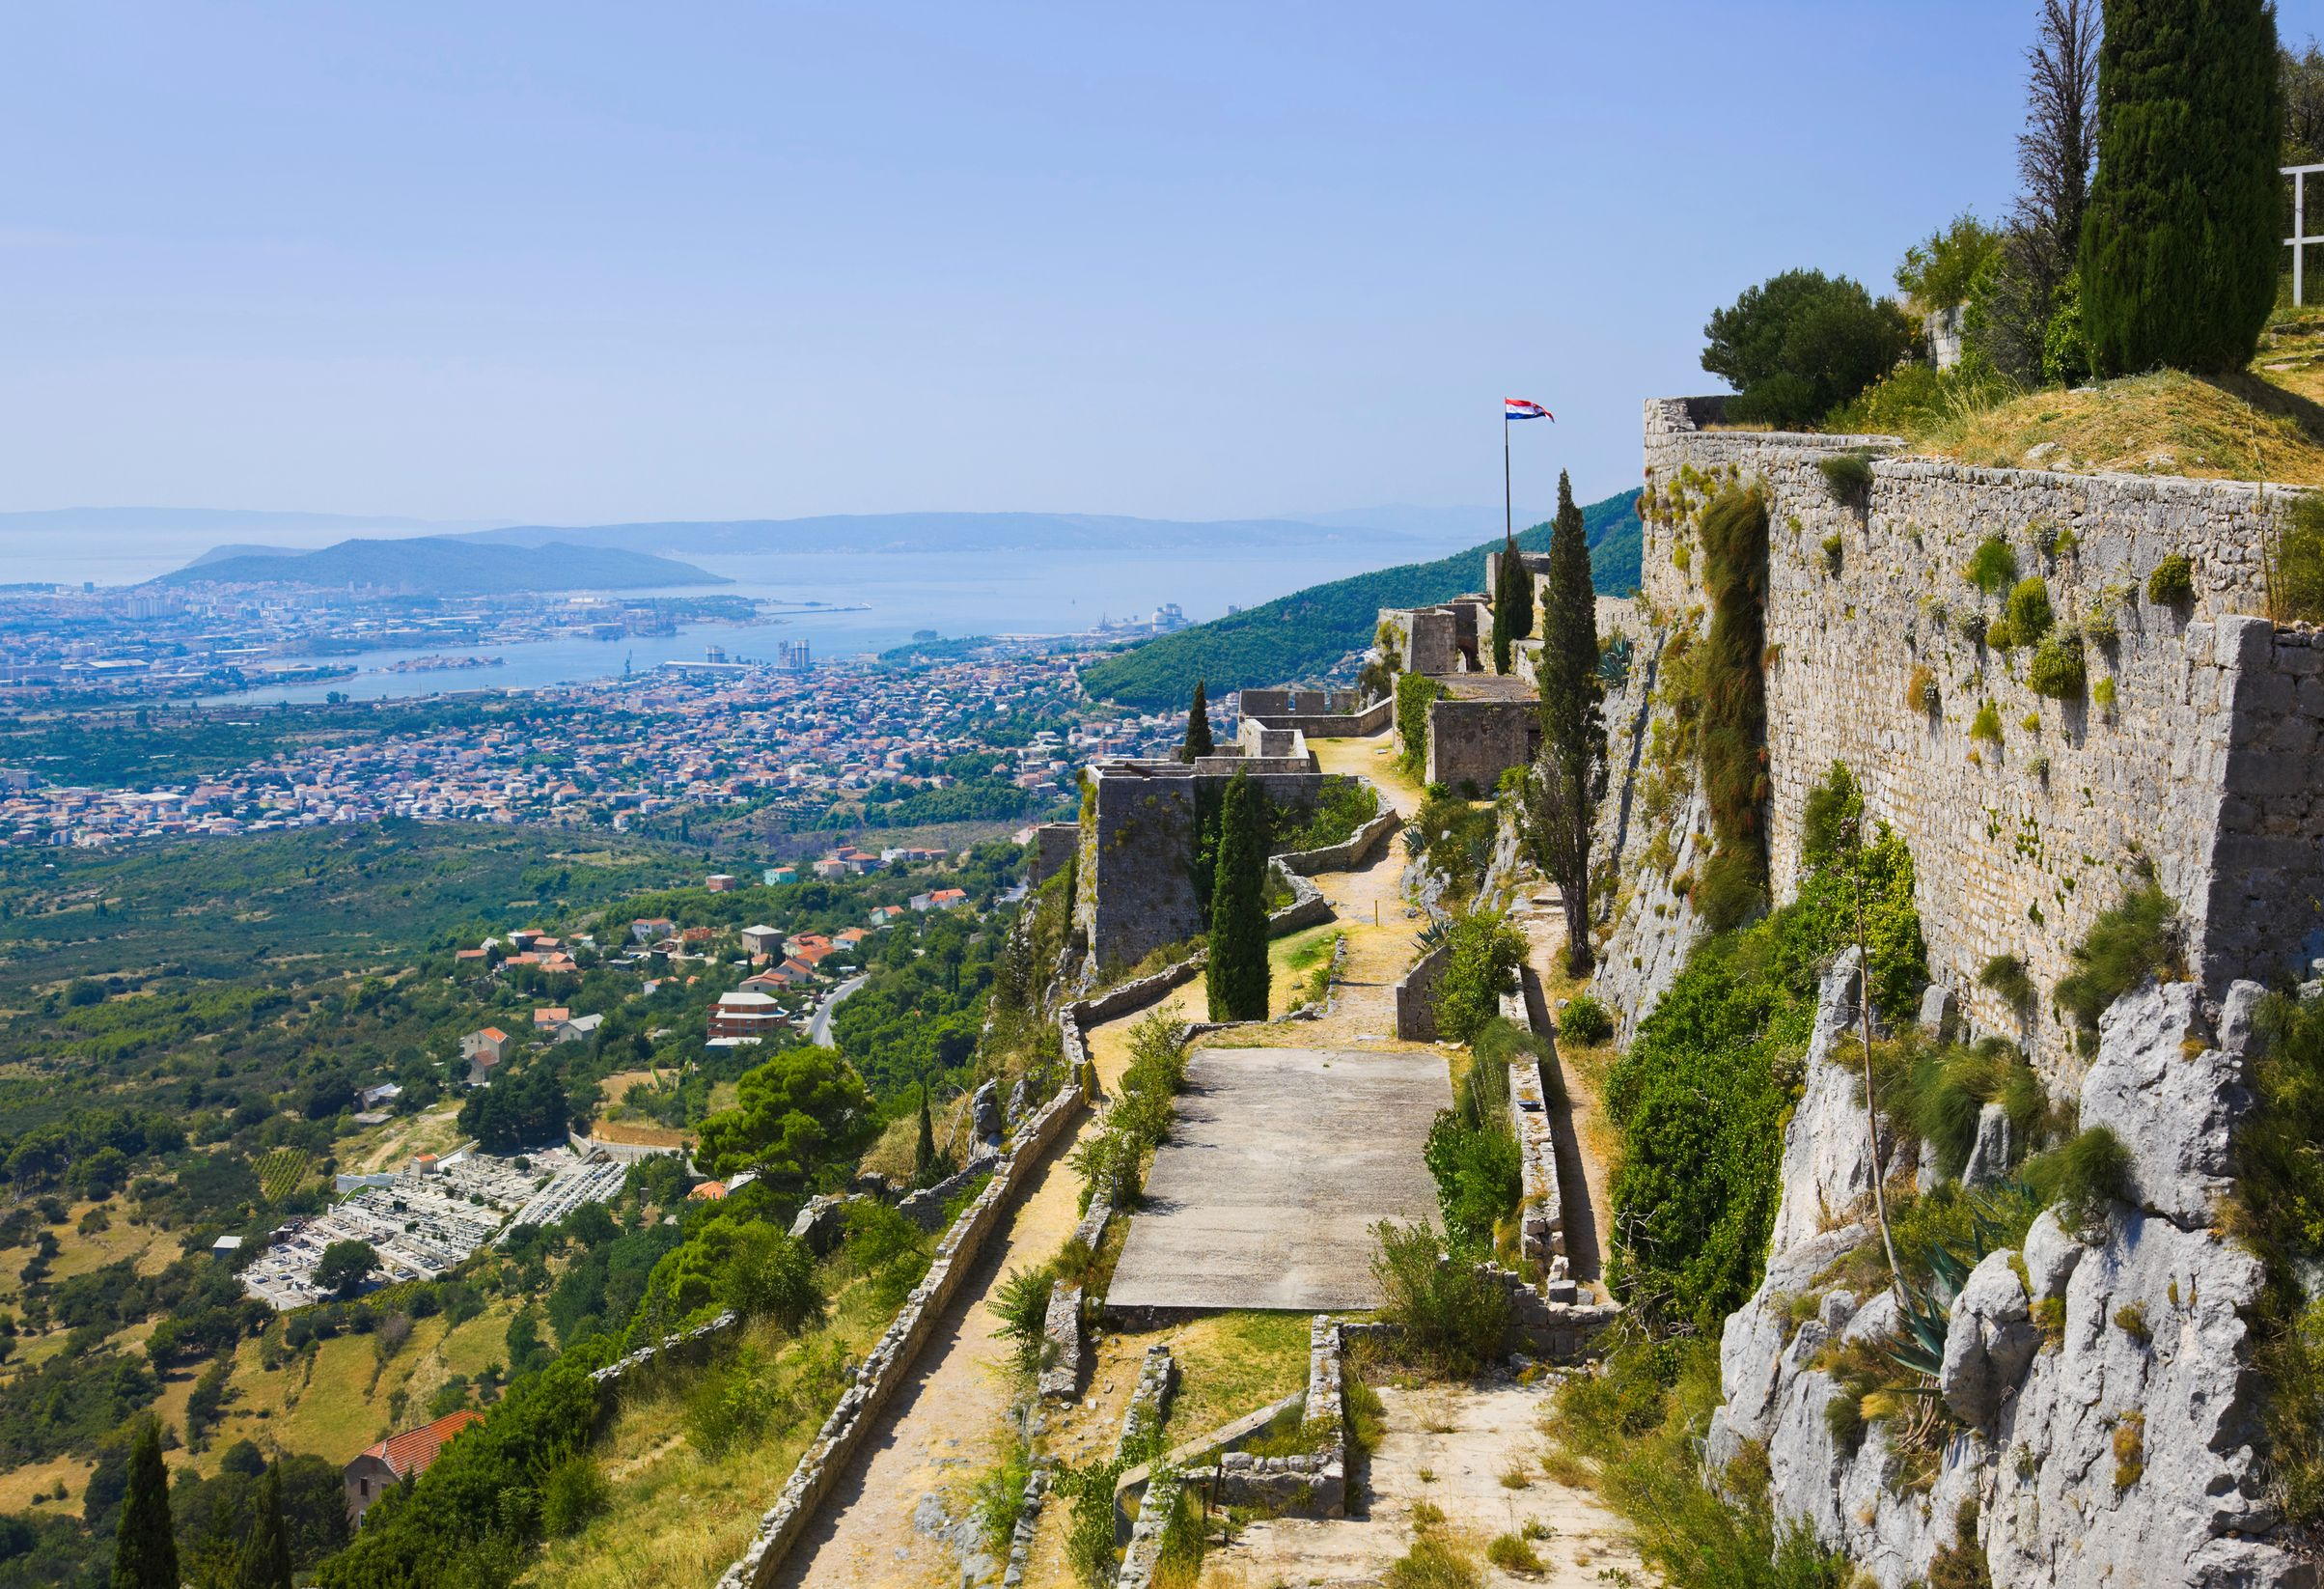 Beaches and mountainous cliffs make Split, Croatia, one of the best cities to visit in central Europe.